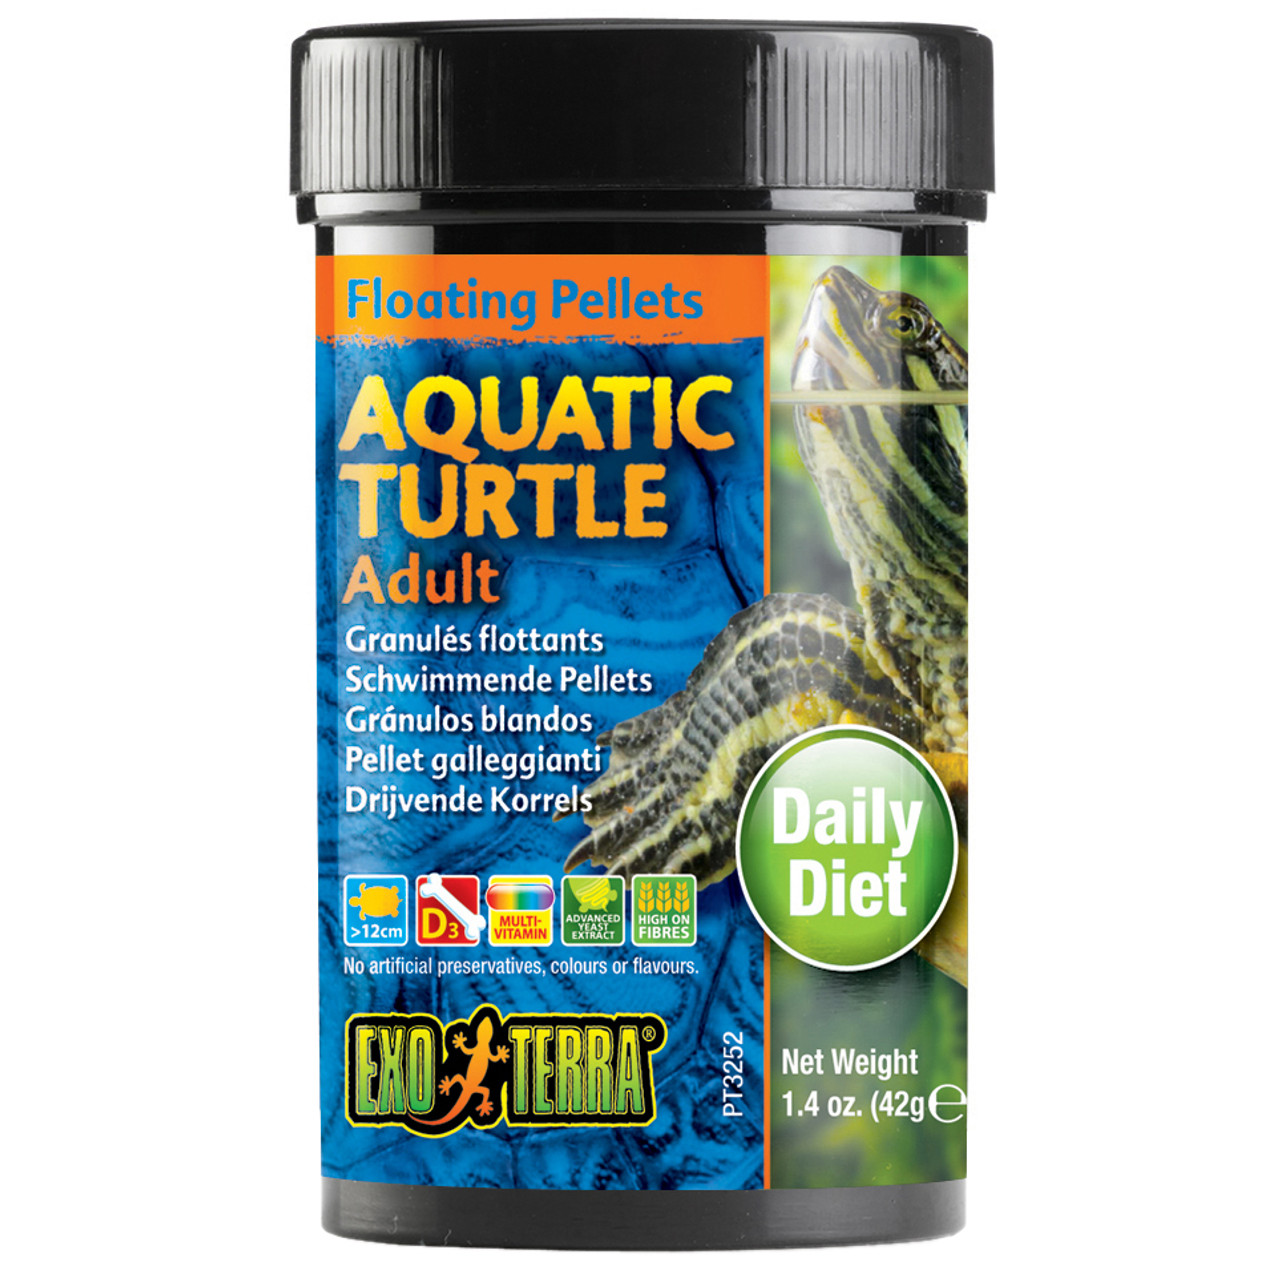 Exo Terra Aquatic Turtle Adult Floating Pellets